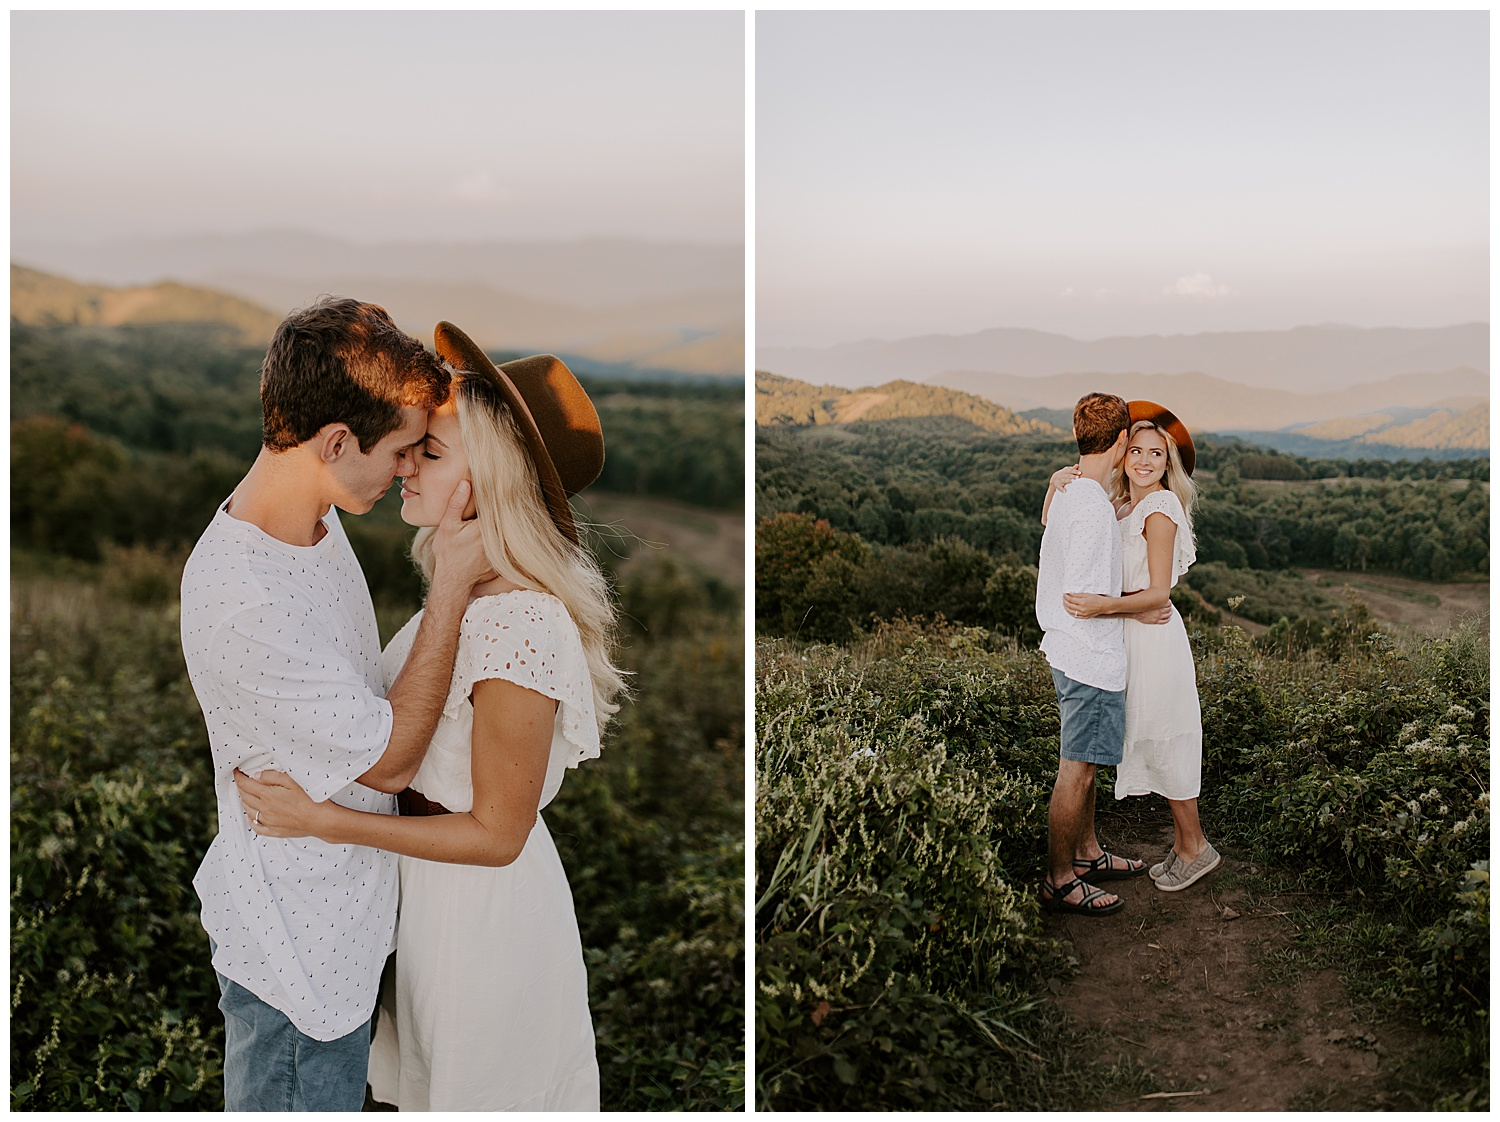 HANNAH_NICK_MAXPATCH_ENGAGEMENT2019-09-05_0004.jpg